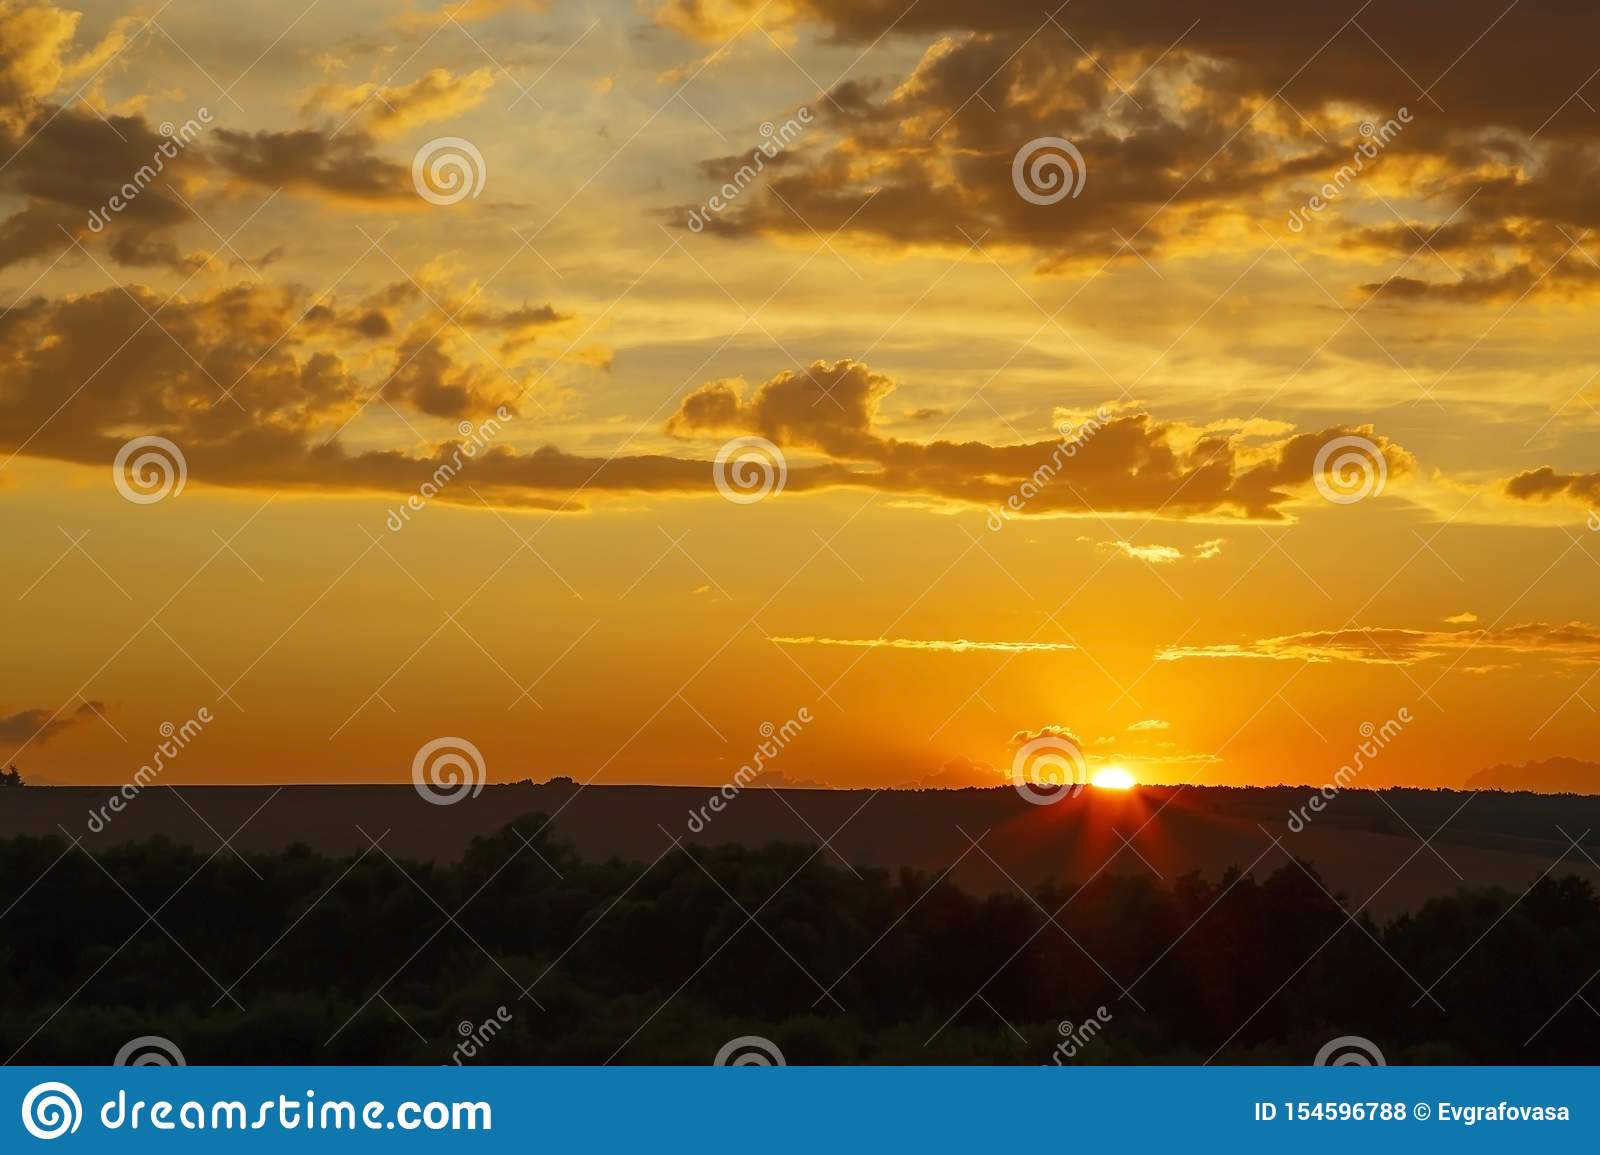 Beautiful bright majestic dramatic evening sky at sunset orange color with rays. The sun shines over the horizon against the